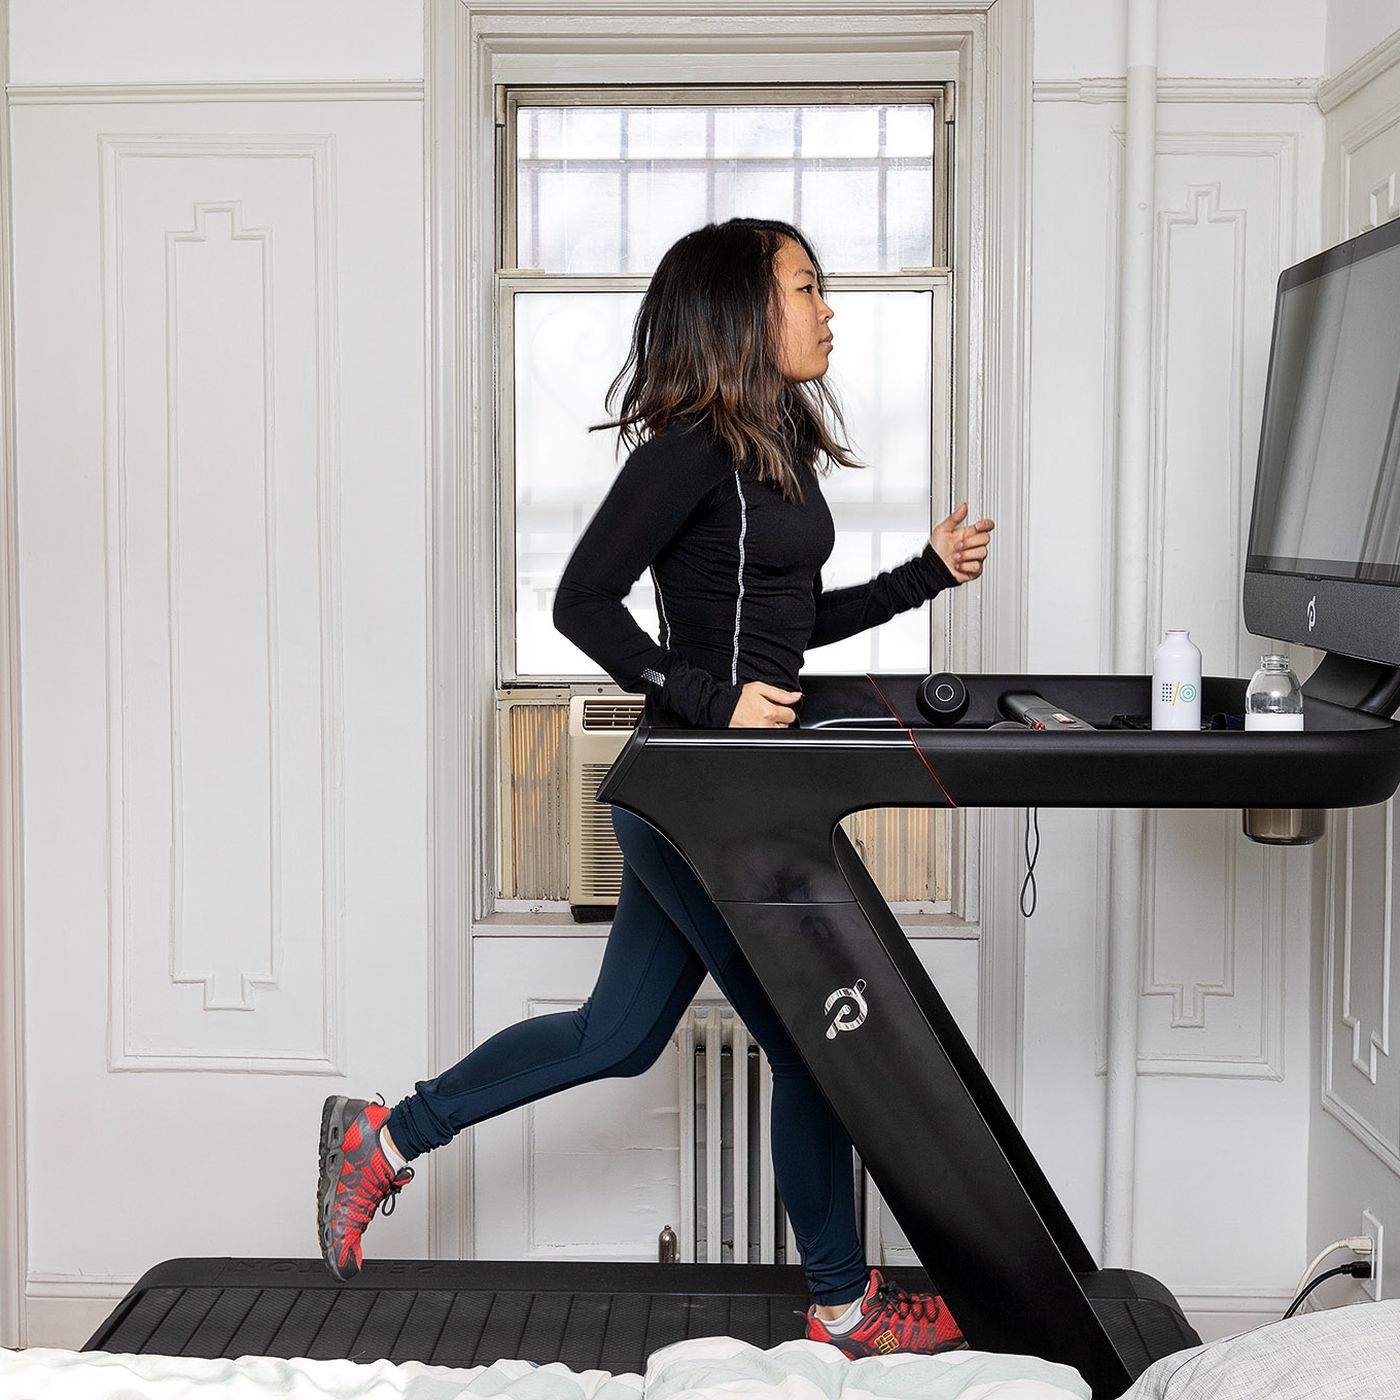 Peloton Tread review 5K training on a $4K treadmill The Verge